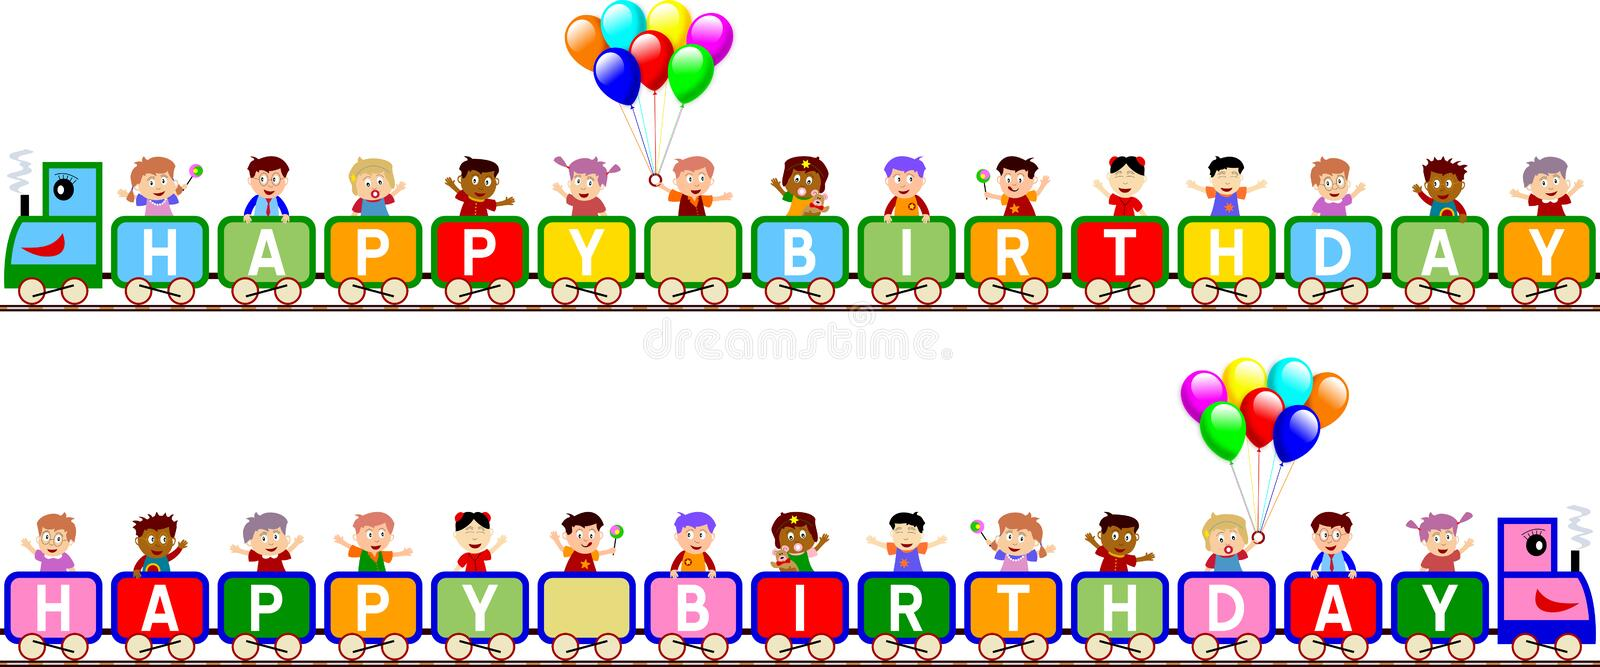 Happy Birthday Train Banners Royalty Free Stock Images